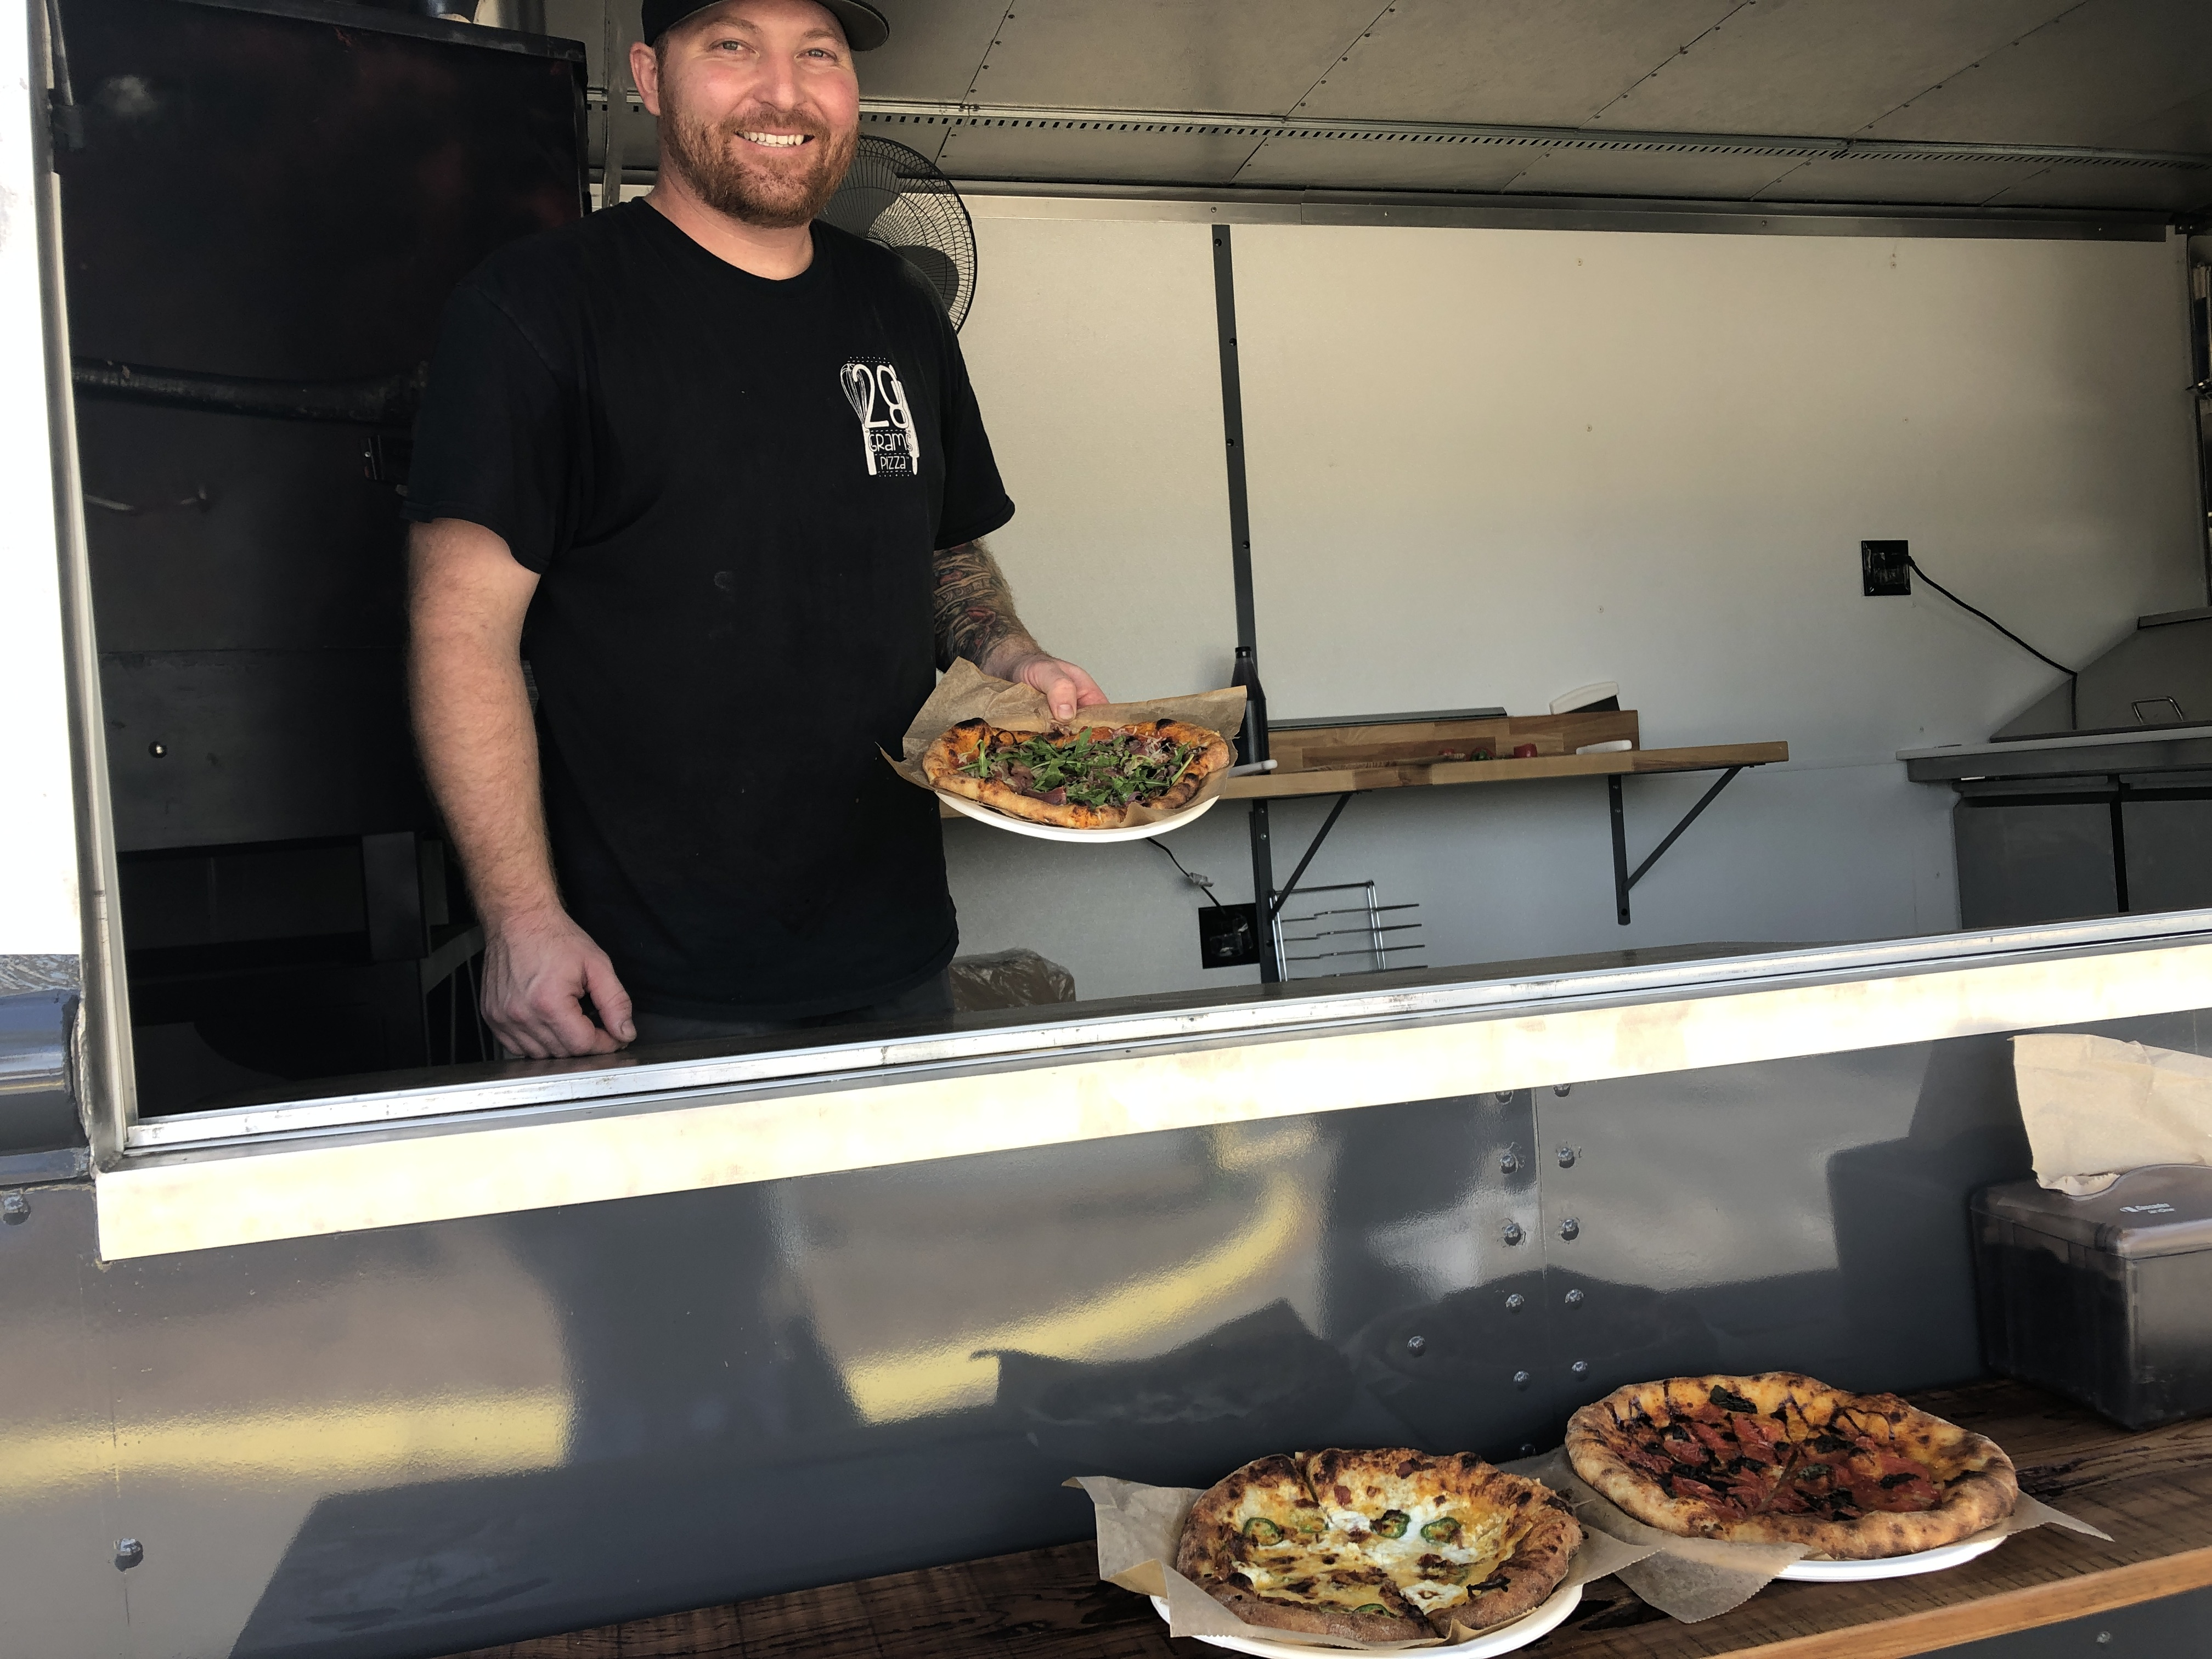 Troy, the owner of 28 Grams, serving up our pizzas